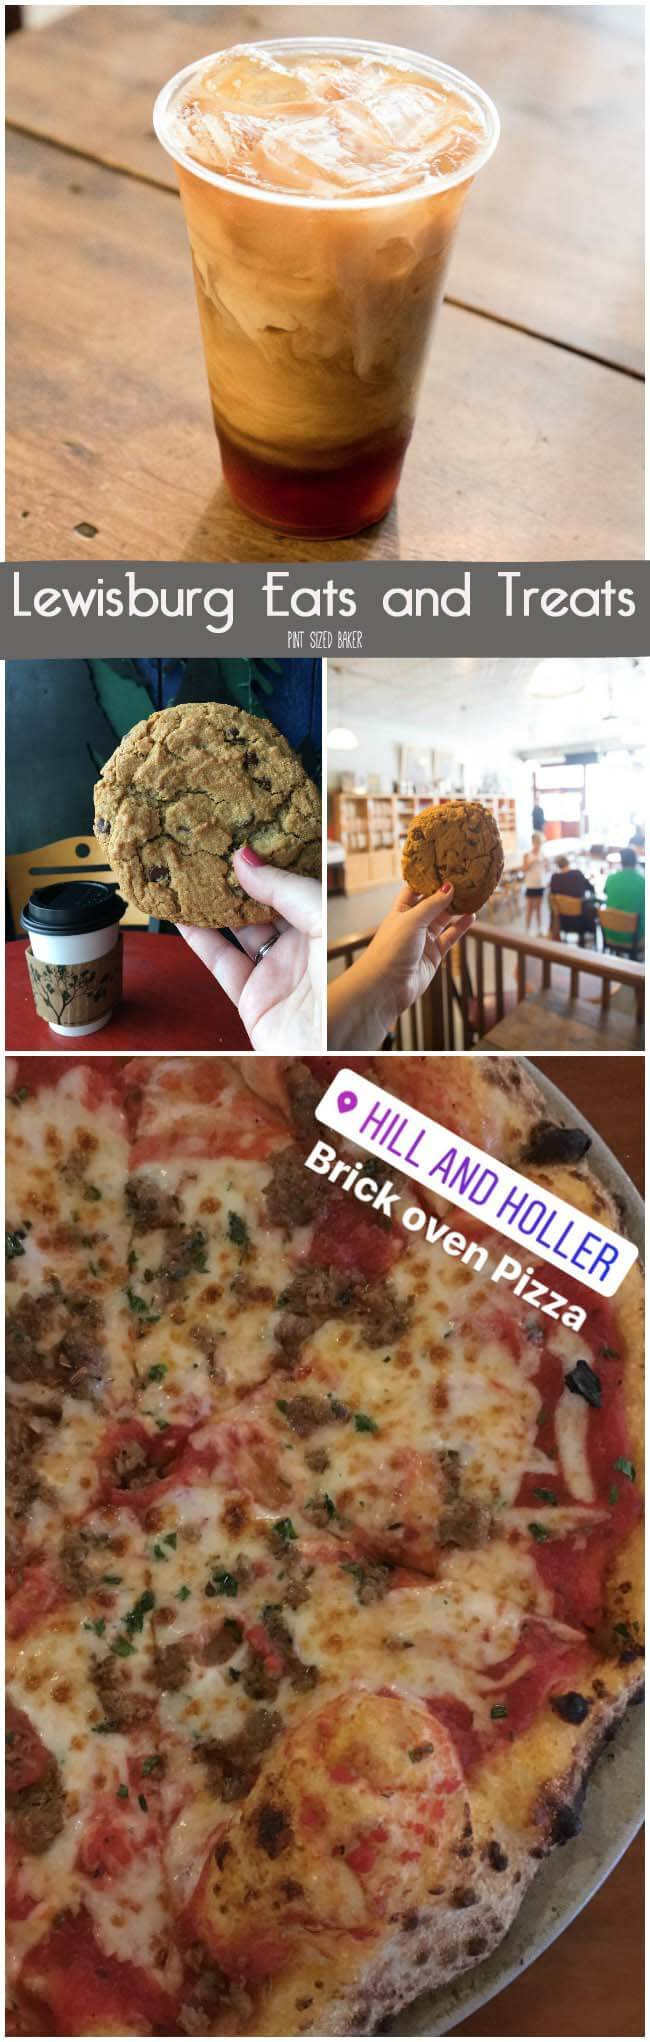 Relax those tired legs with a brick oven pizza and a cold beer. Lewisburg, WV has quite the selection of quaint restaurants and coffee shops.